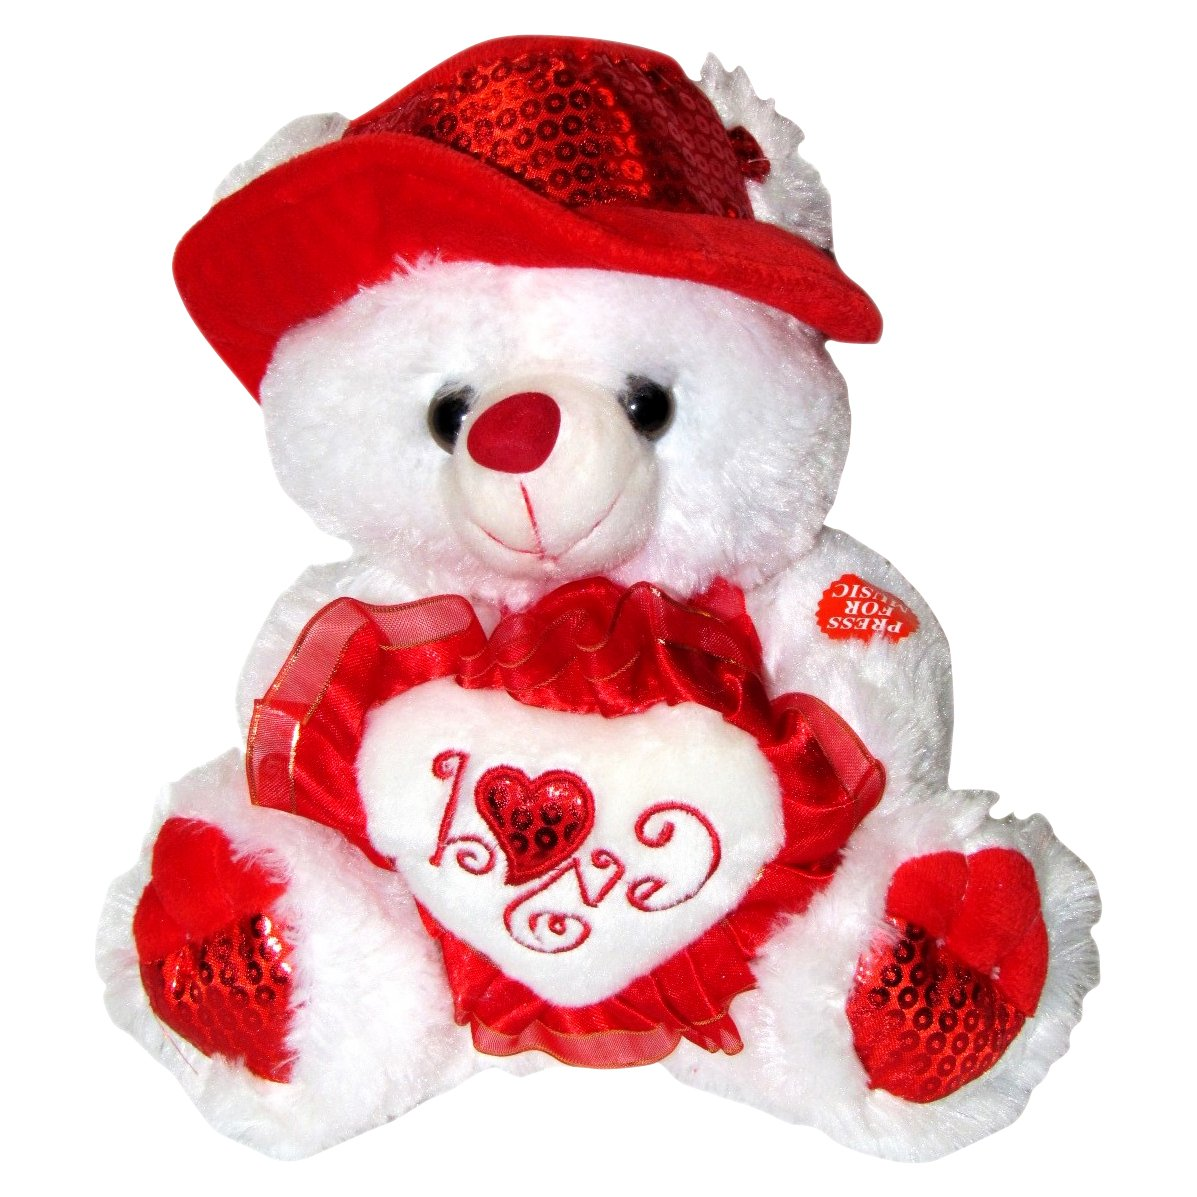 Musical I Love You Teddy Bear with Red Hat